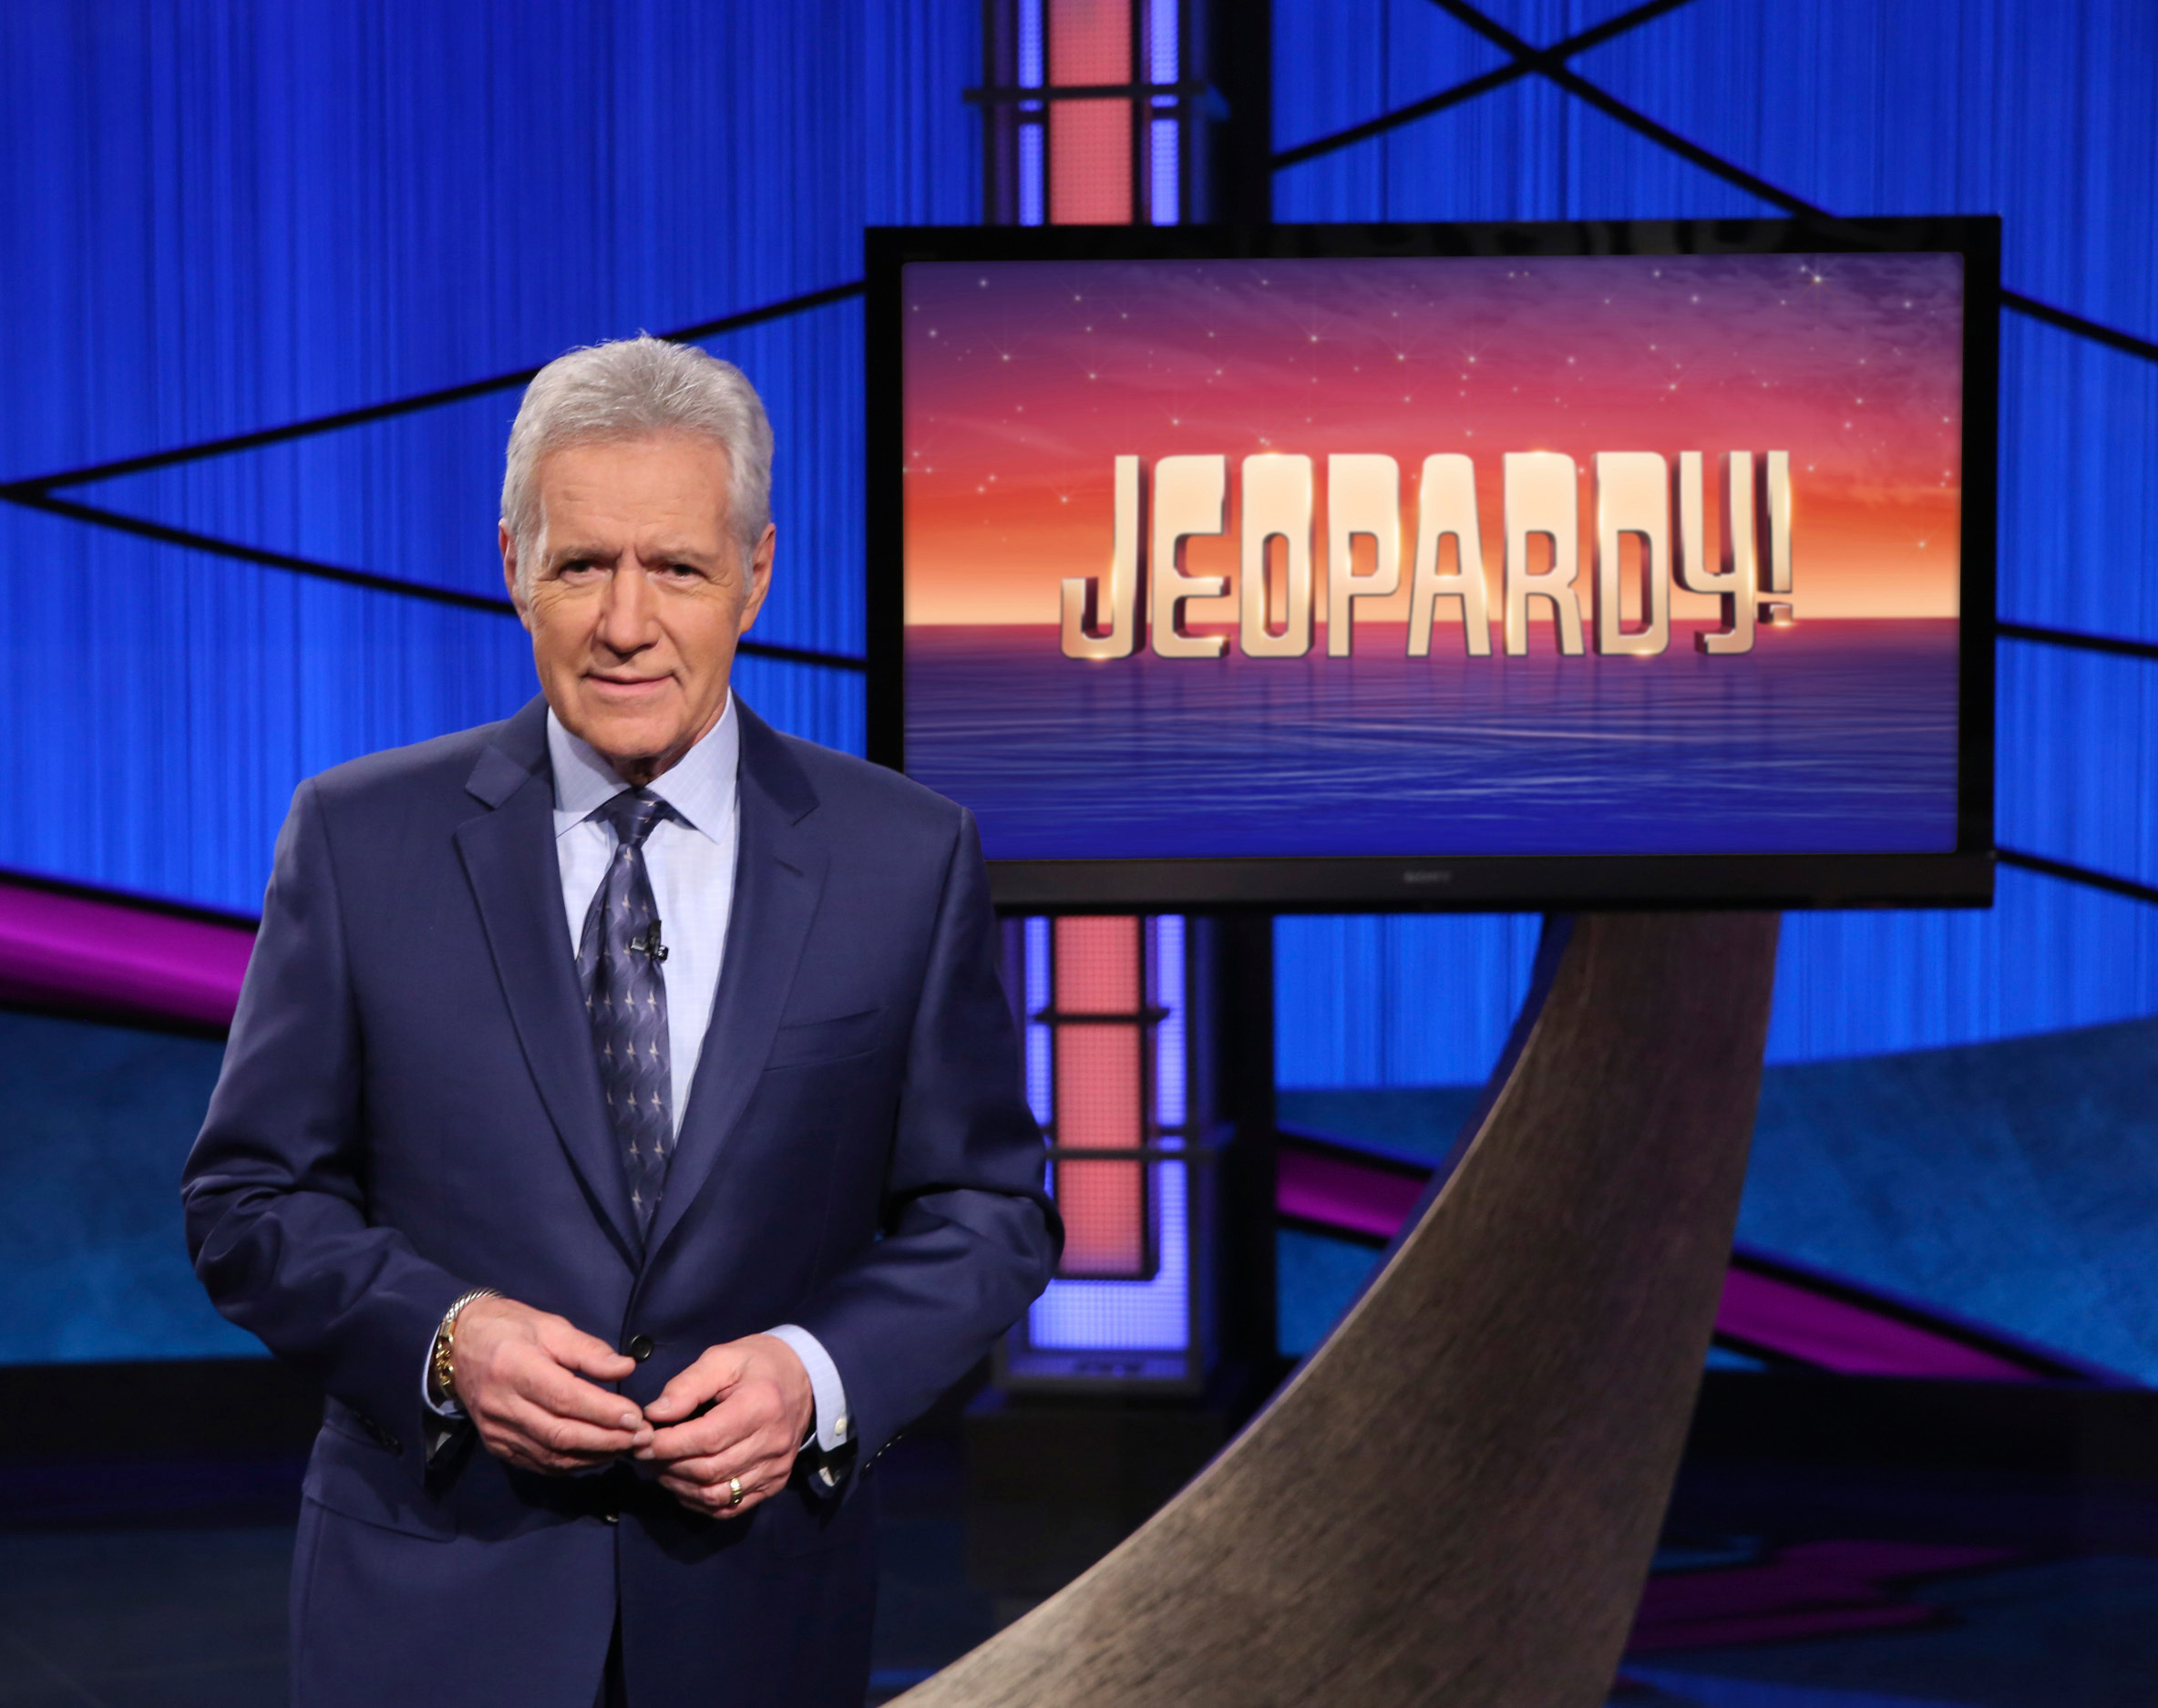 'Jeopardy!' posts a final message for longtime host Alex Trebek